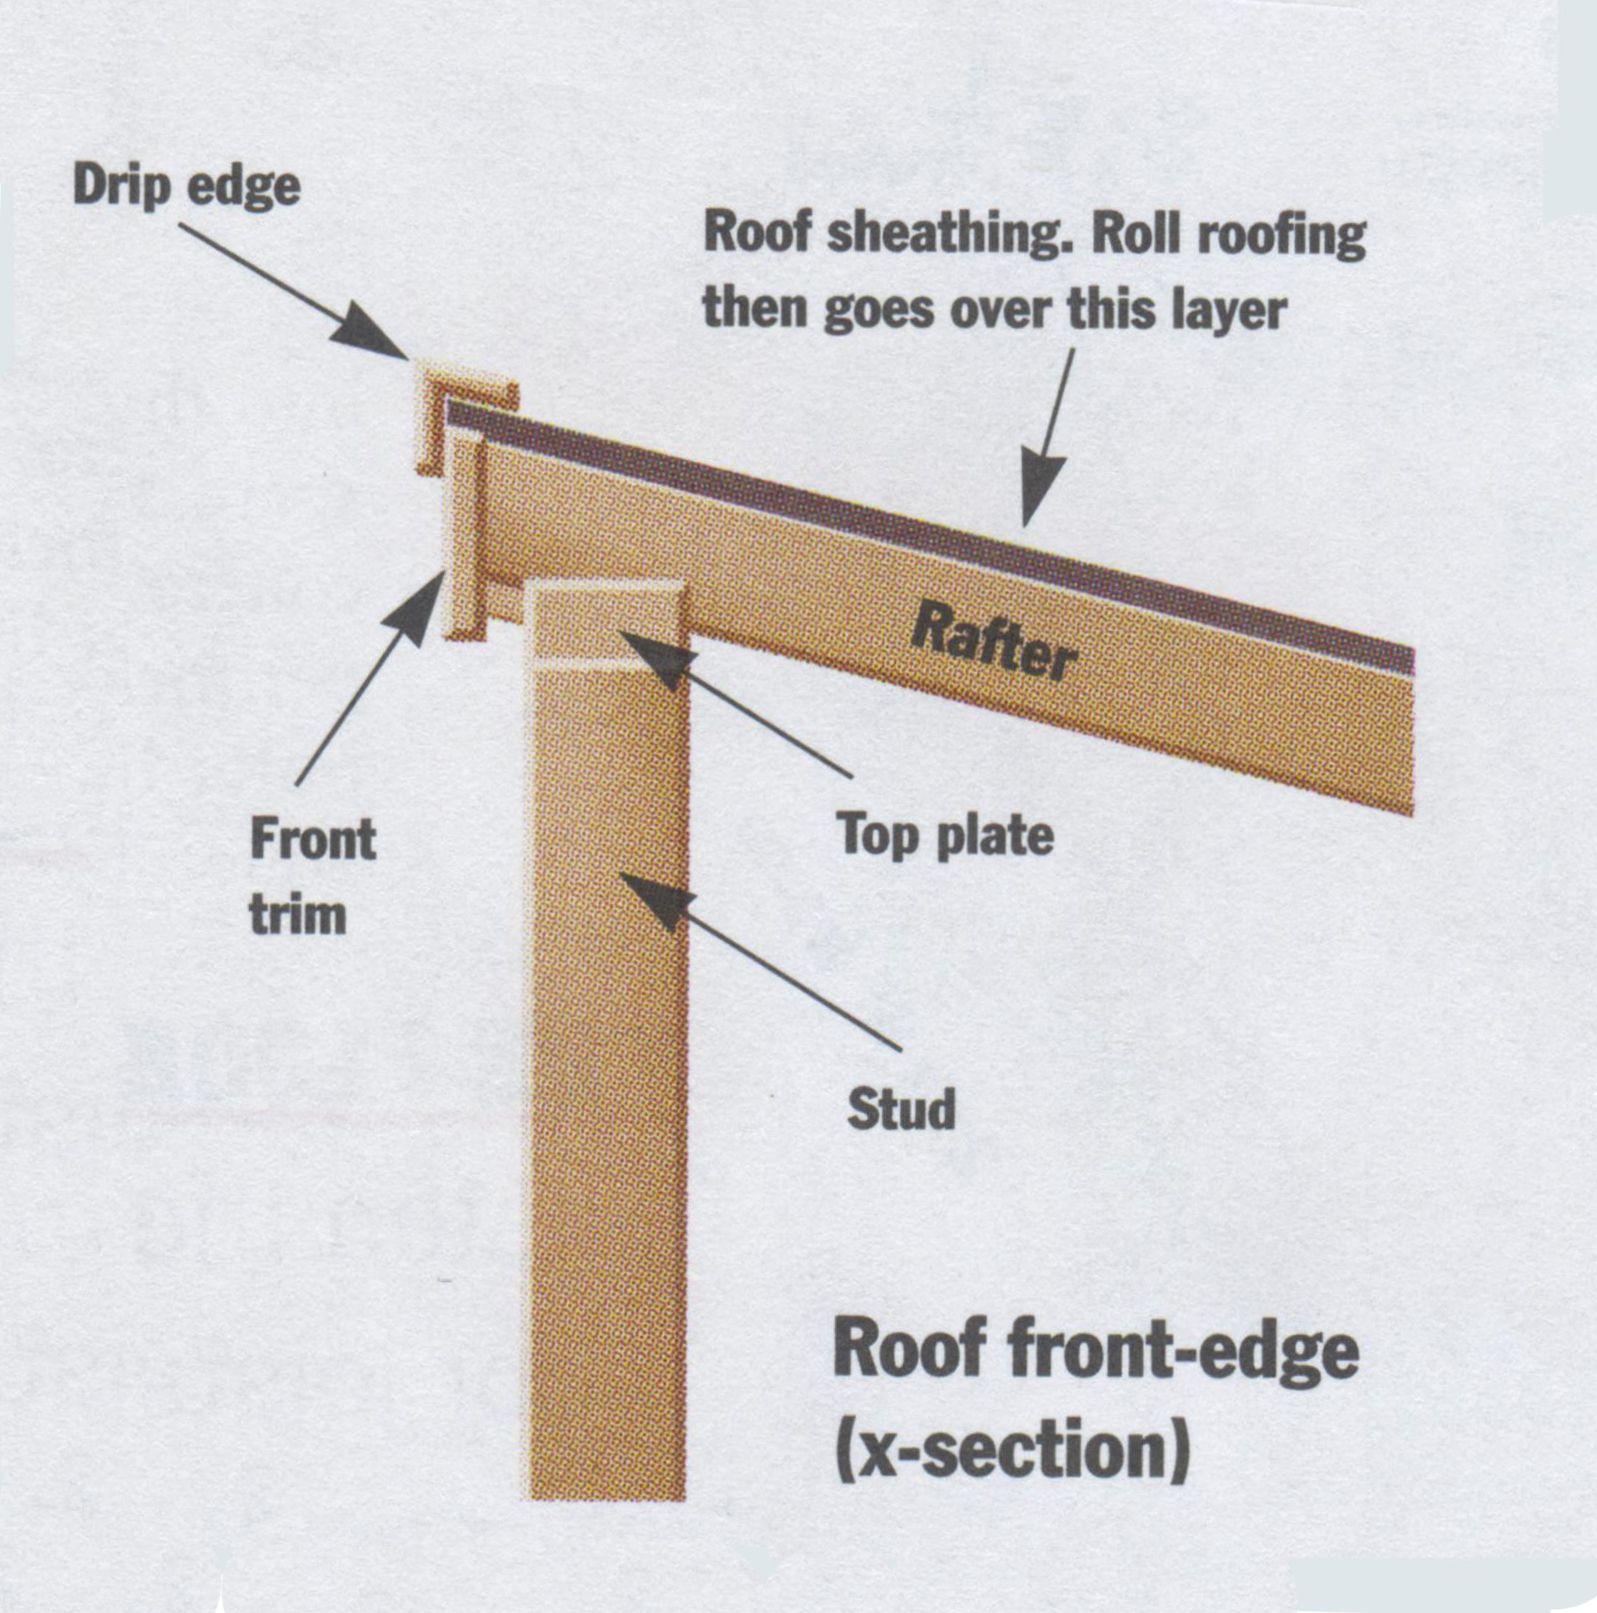 How To Build A Shed Mother Earth News Building A Shed Shed Roof Sheathing